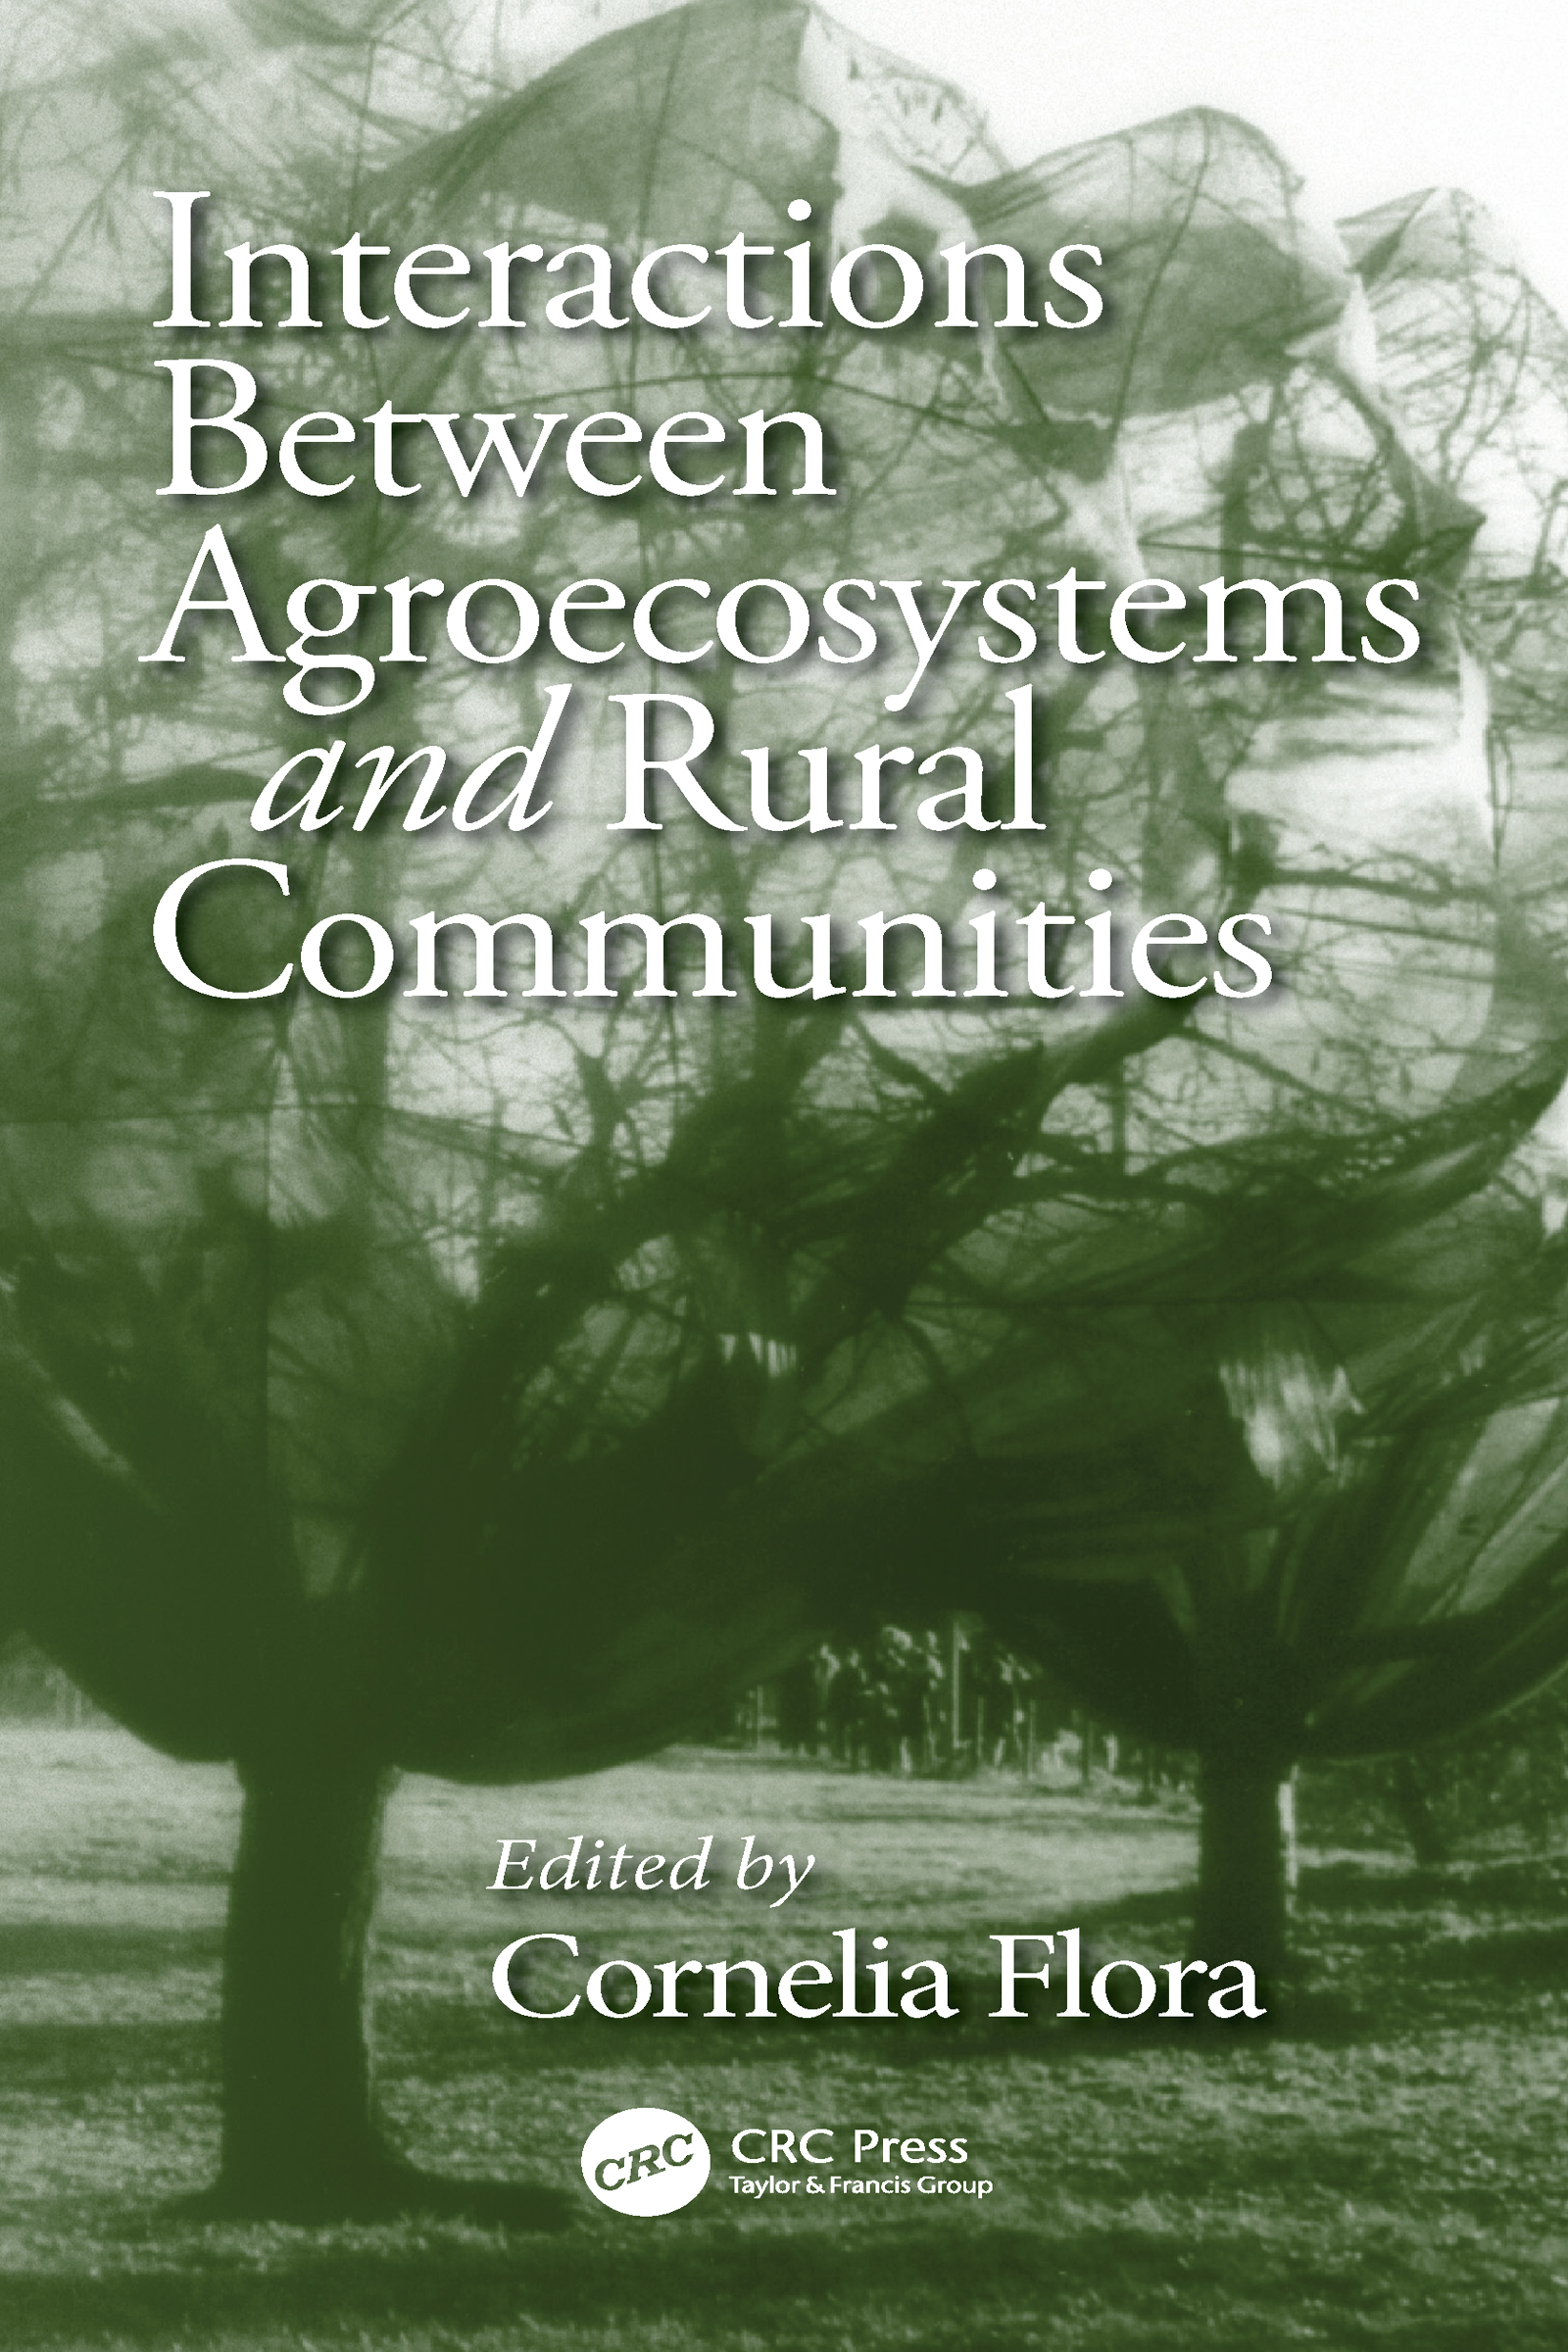 Interactions Between Agroecosystems and Rural Communities book cover